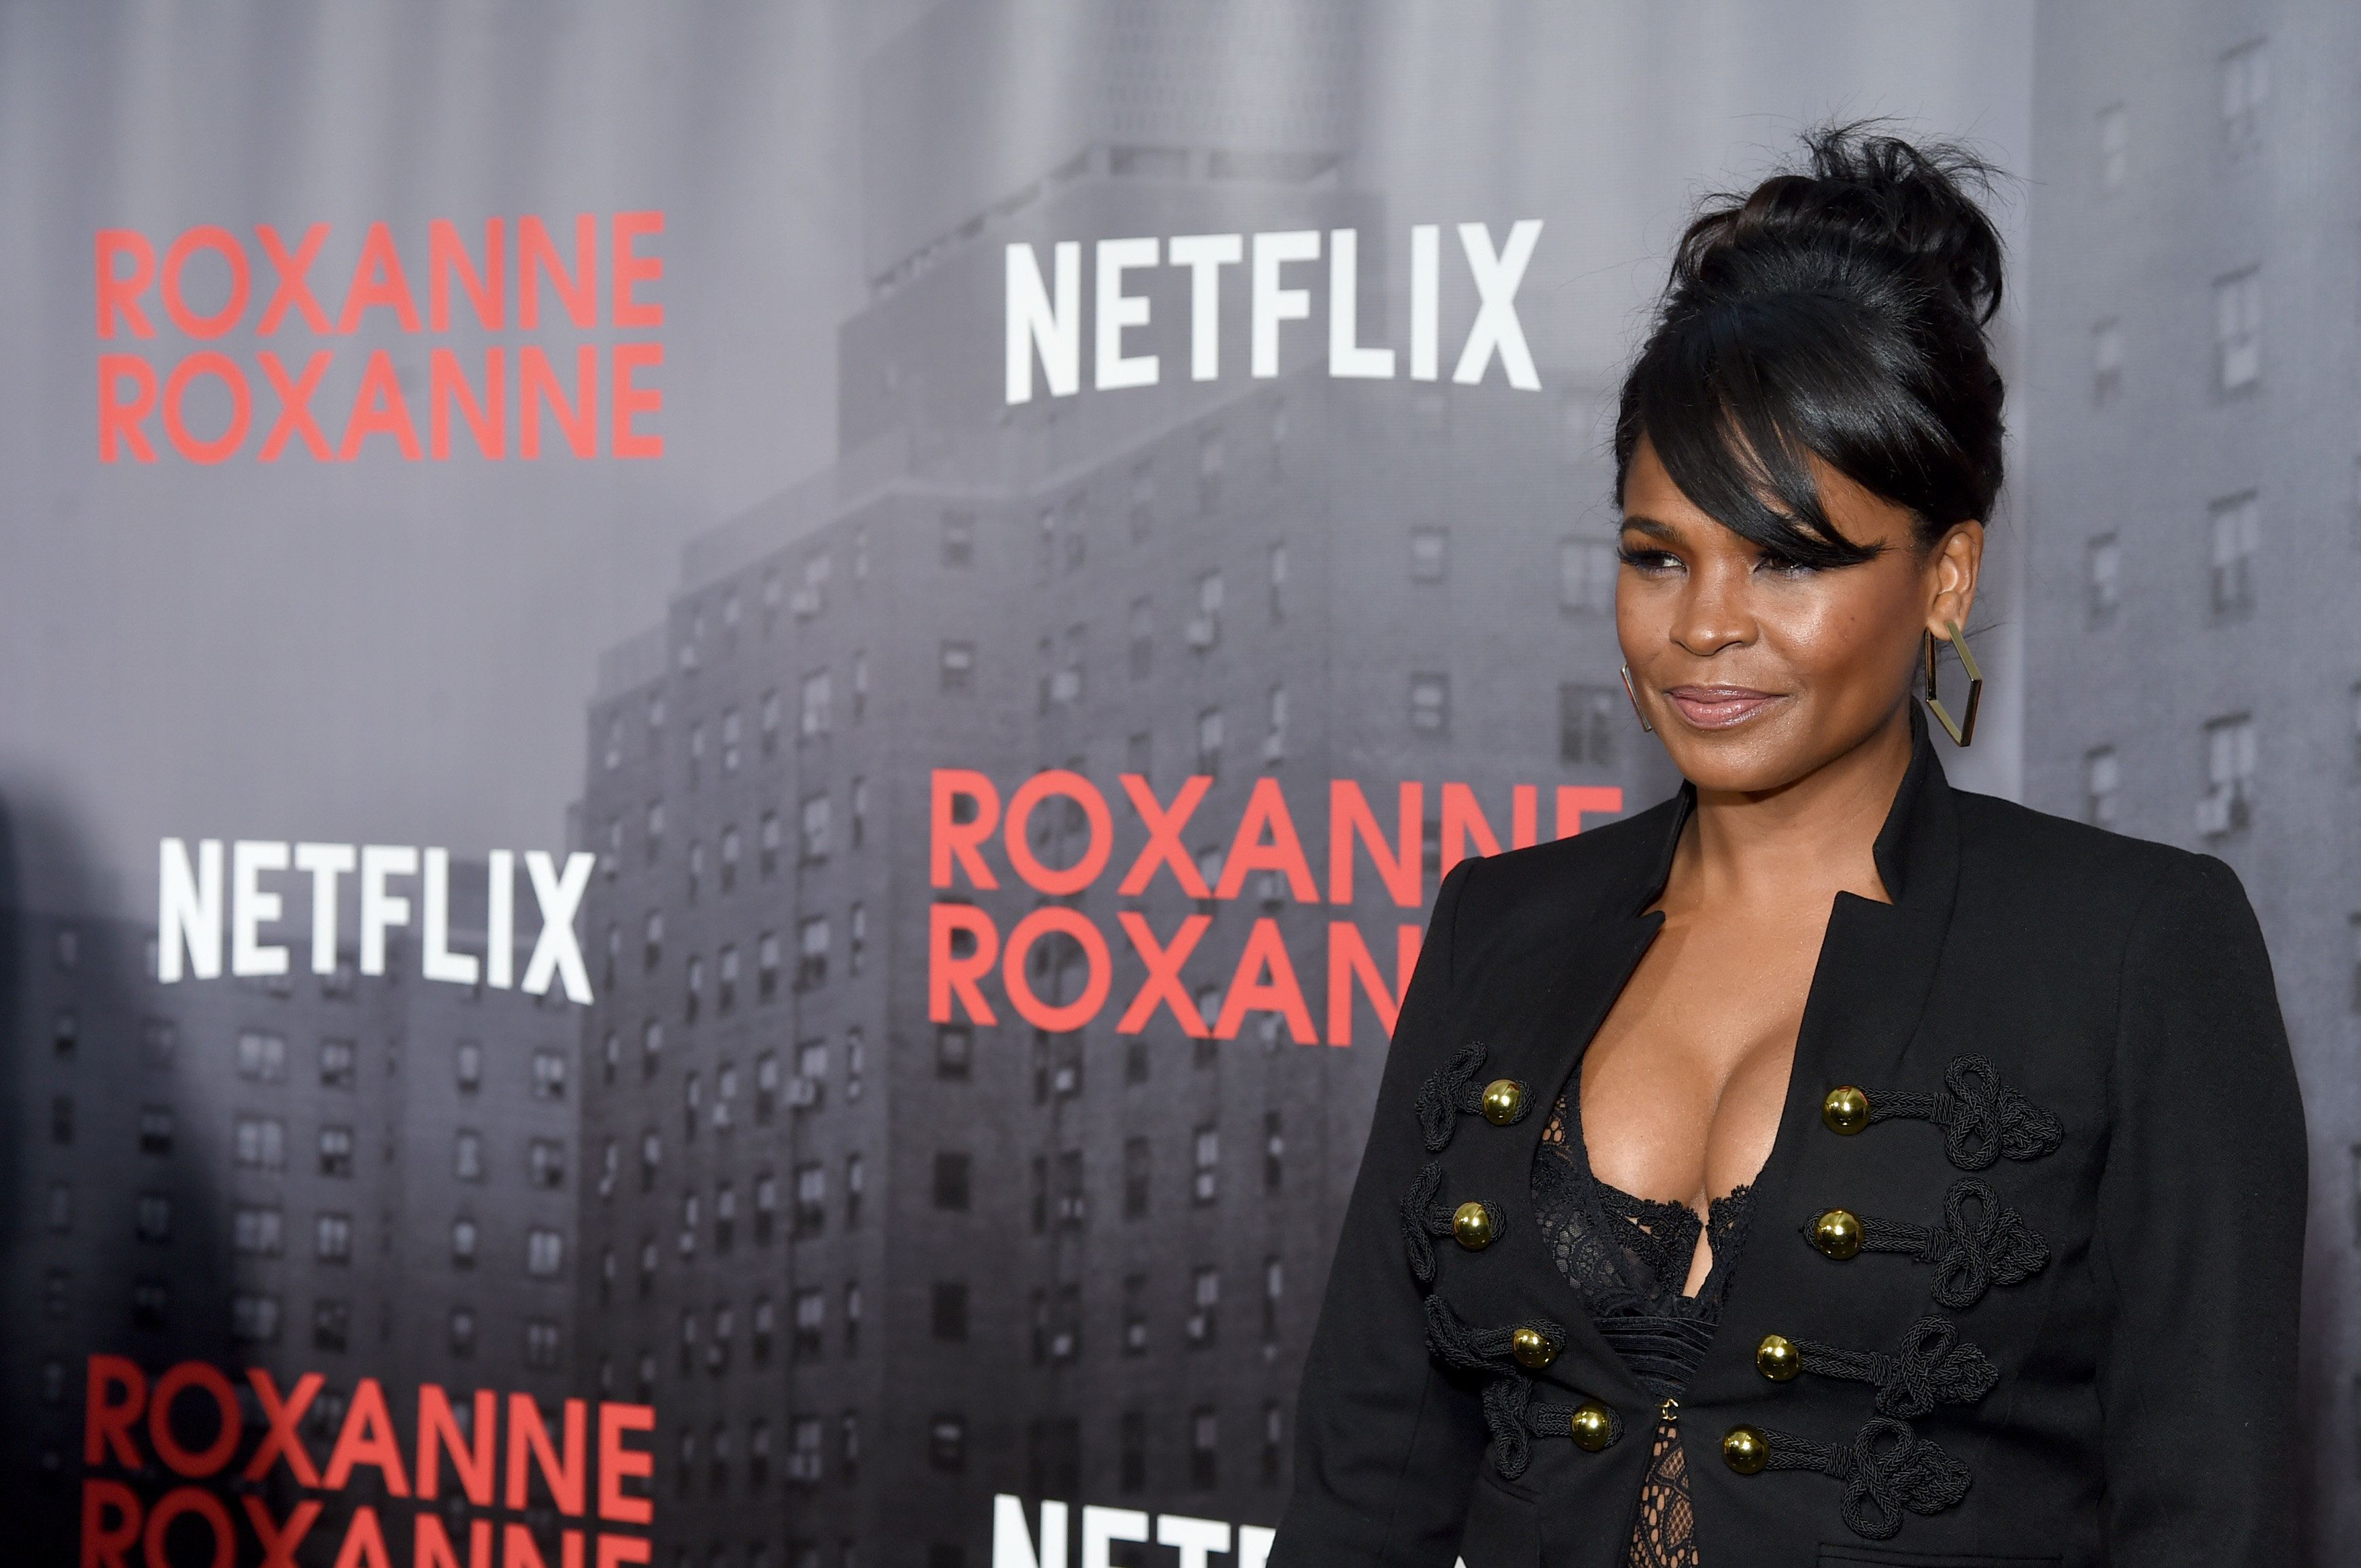 NEW YORK, NY - MARCH 19:  Actor Nia Long attends a special screening of the Netflix film 'Roxanne Roxanne' at the SVA Theater on March 19, 2018 in New York City.  (Photo by Jamie McCarthy/Getty Images for Netflix)